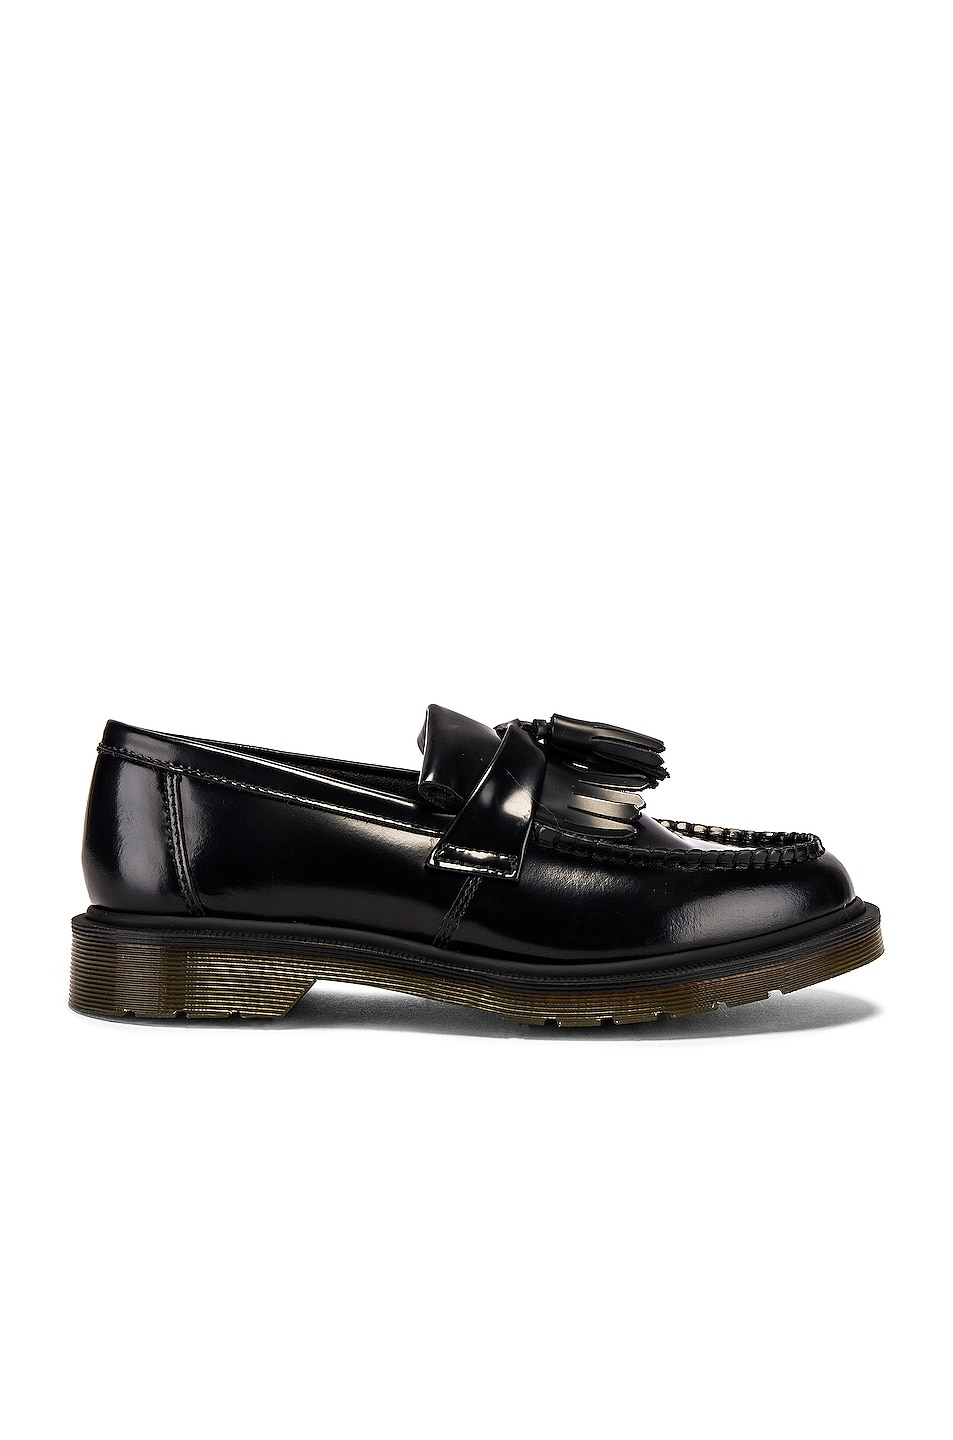 Adrian by Dr. Martens, available on fwrd.com for $130 Kaia Gerber Shoes Exact Product